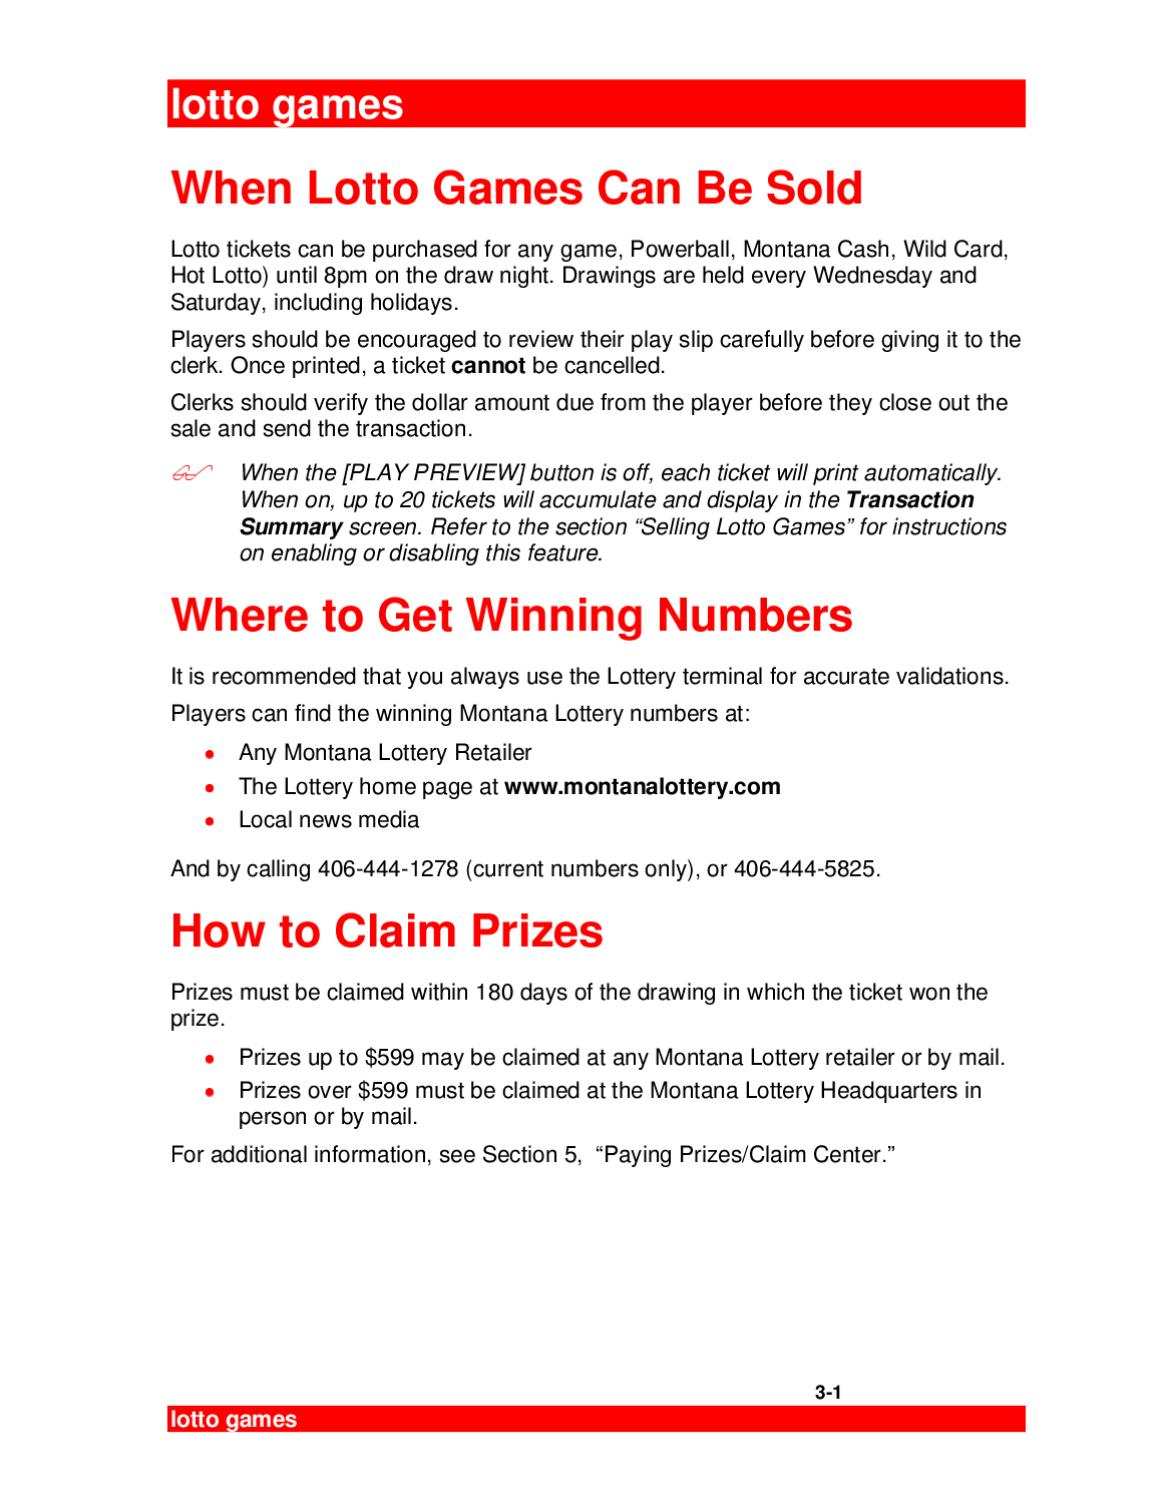 3 MT User-Games July06 by Montana Lottery - issuu